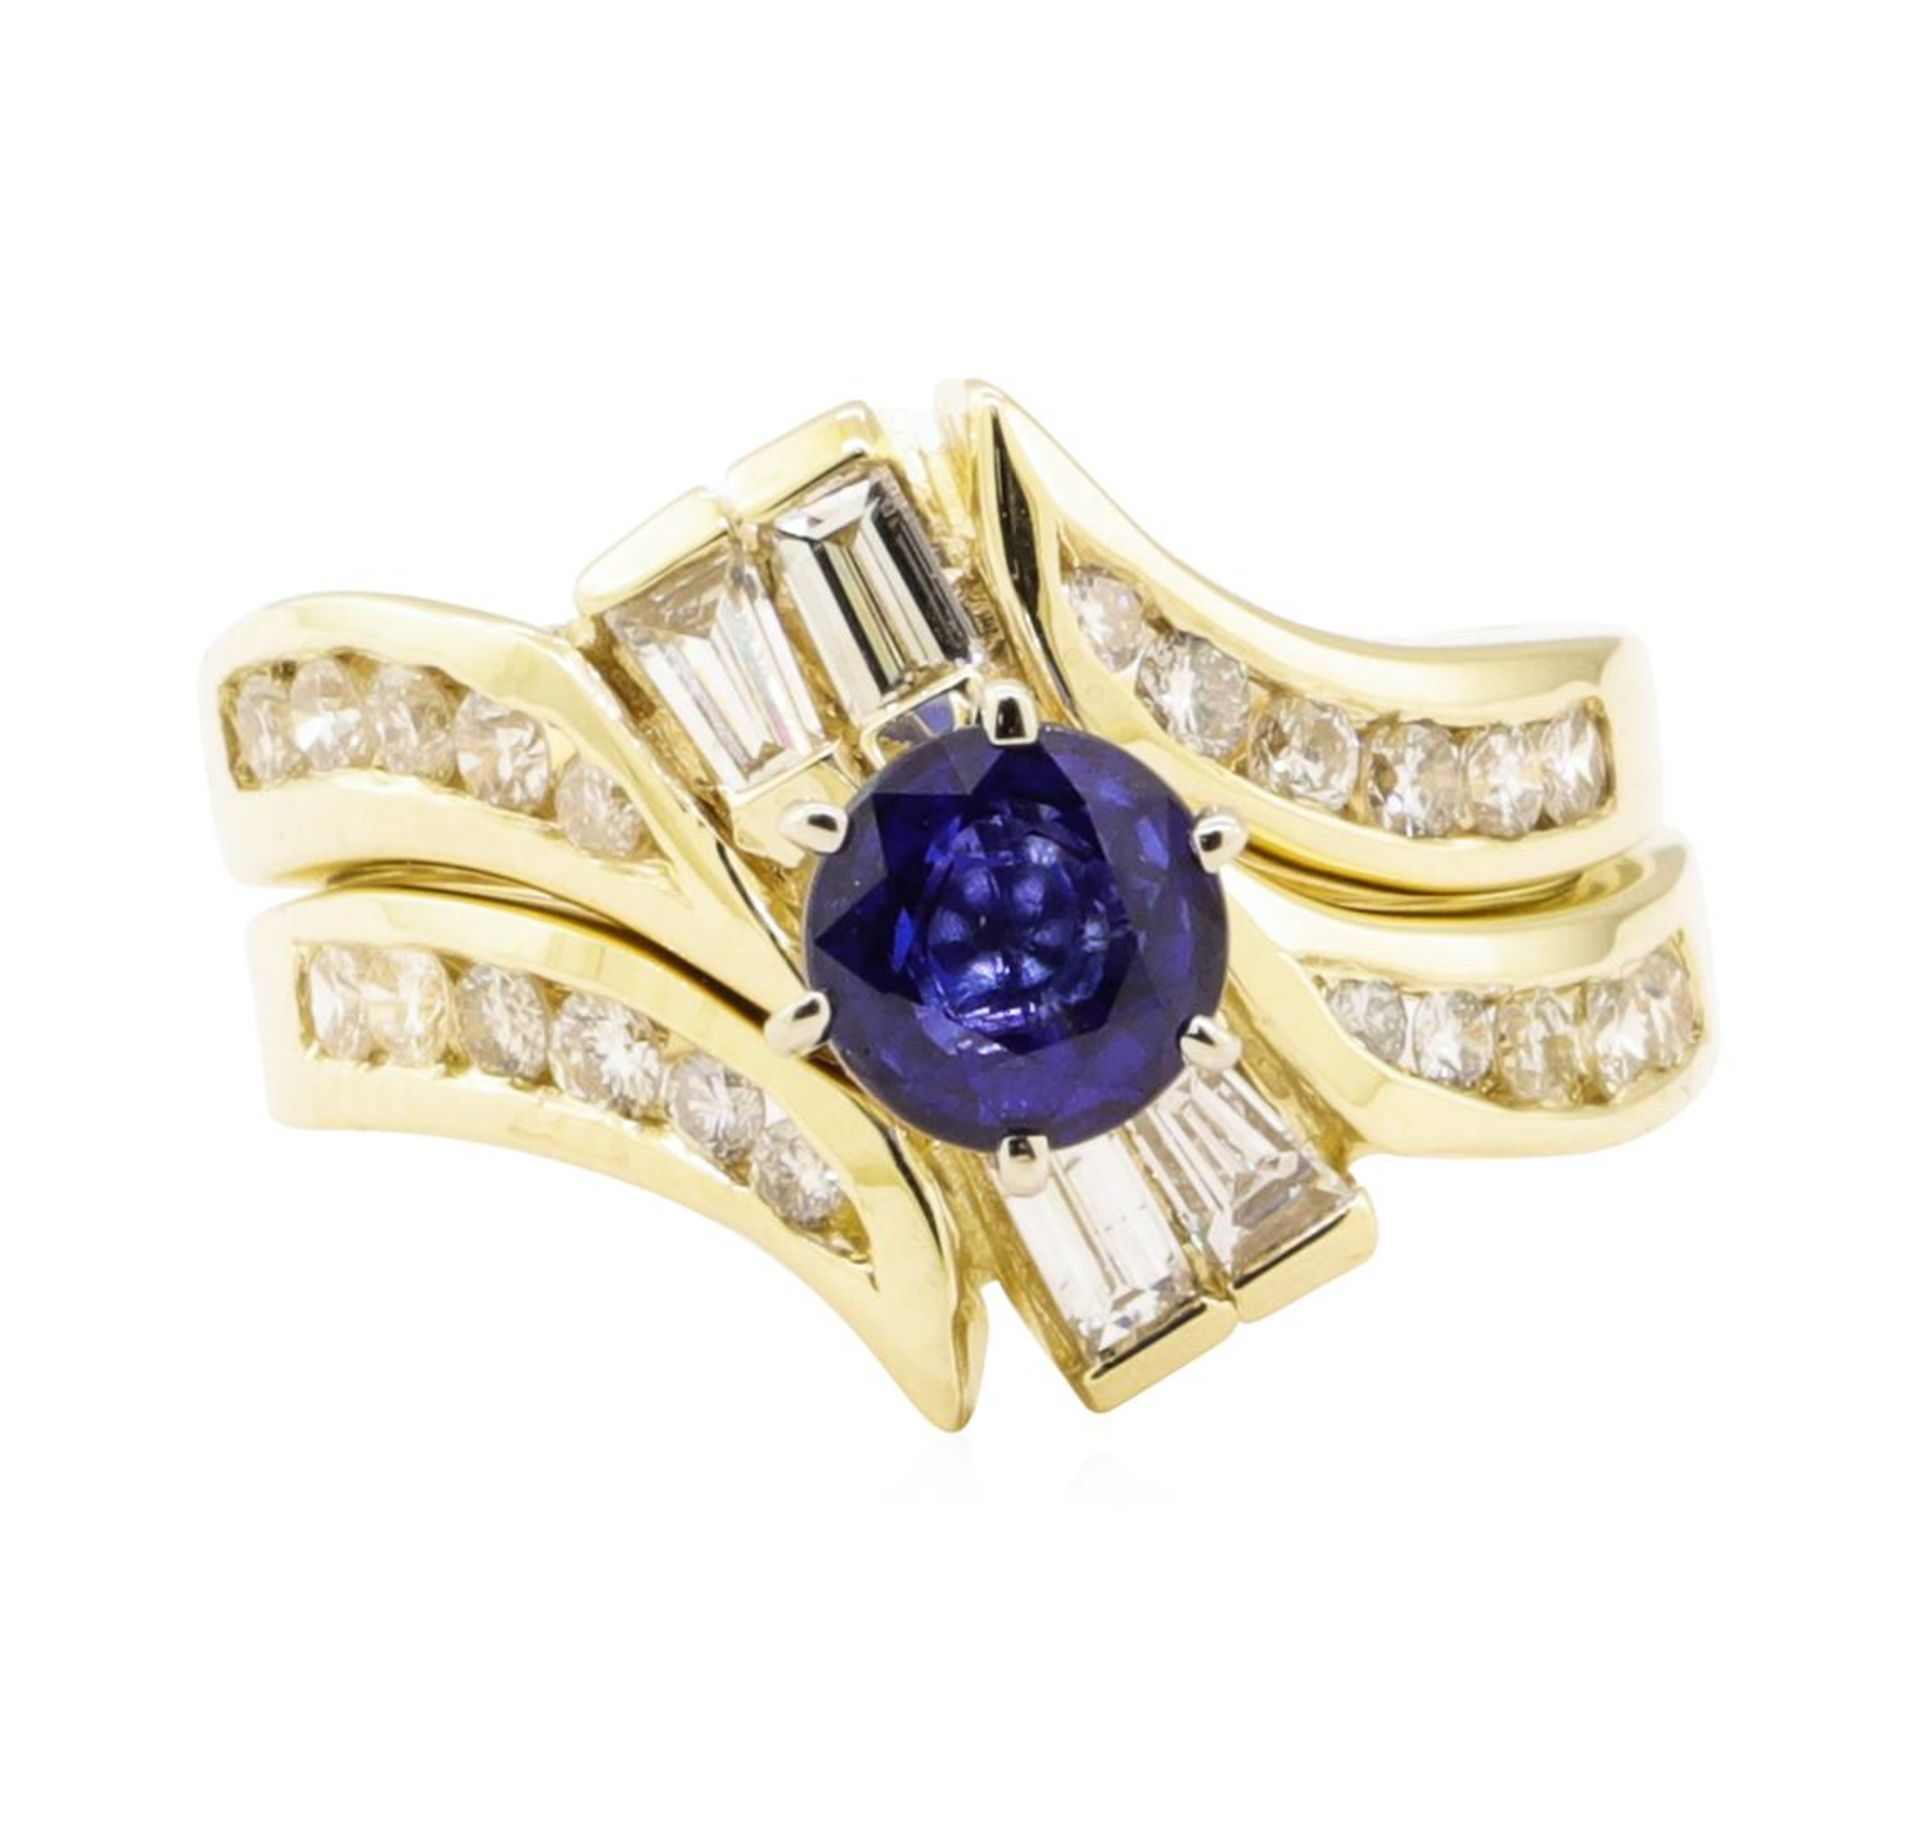 1.61 ctw Blue Sapphire And Diamond Ring And Band - 14KT Yellow Gold - Image 2 of 4